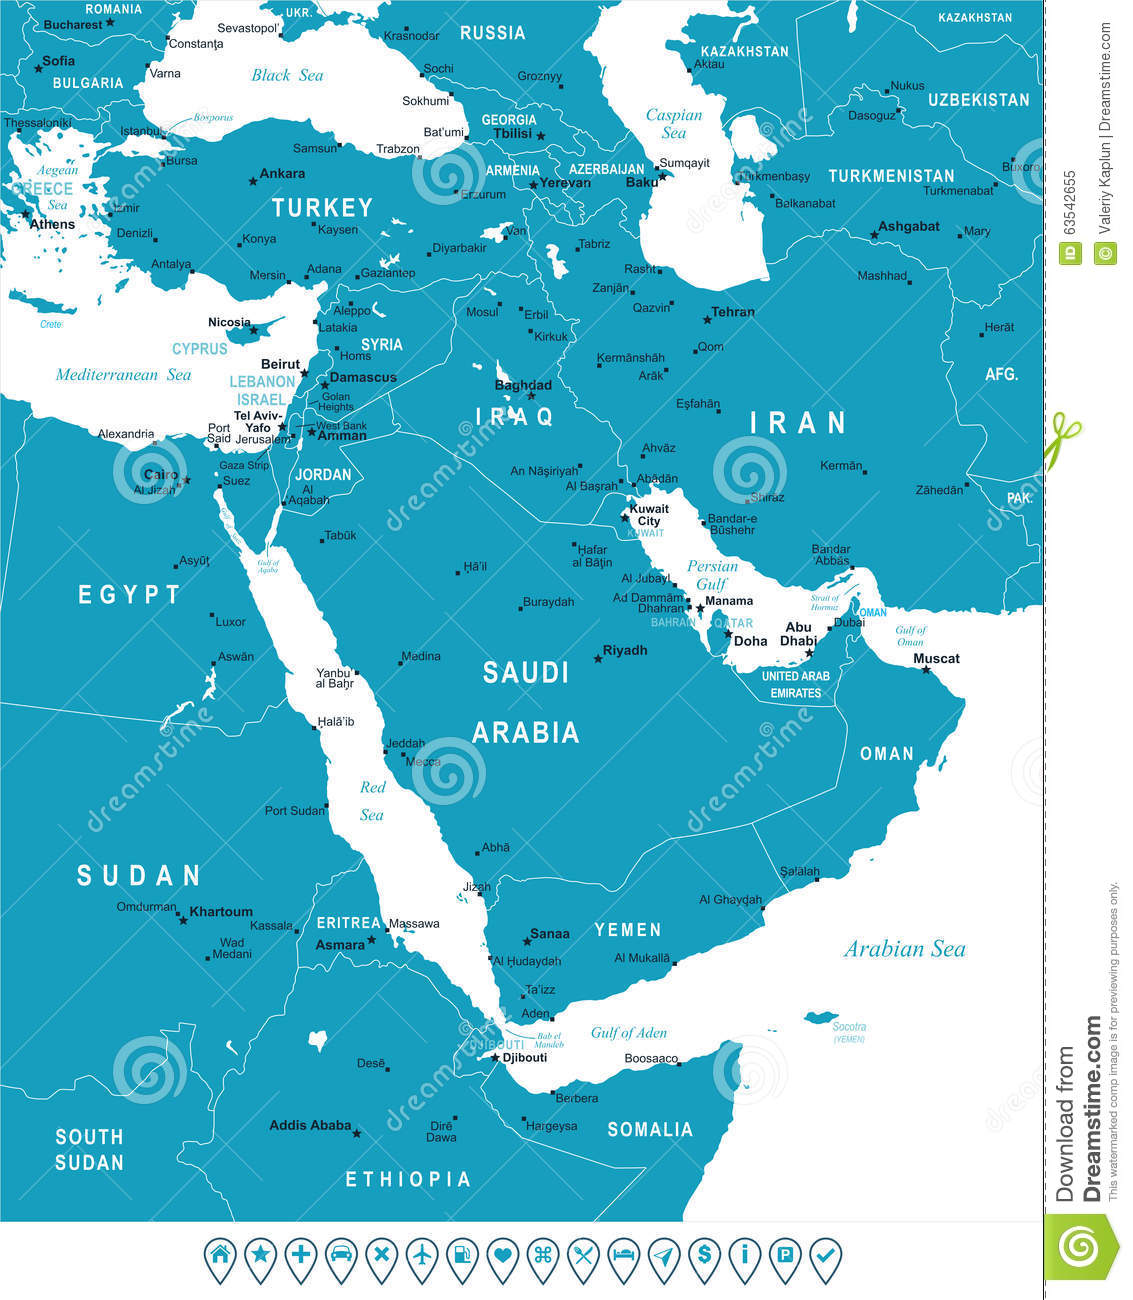 Map Of The Middle East With Labels on map of the middle east with names, map of east asia with labels, map of the middle east with flags, map of north africa and south west asia political, map of the usa with labels, map of east europe with labels, map of asia labeled,